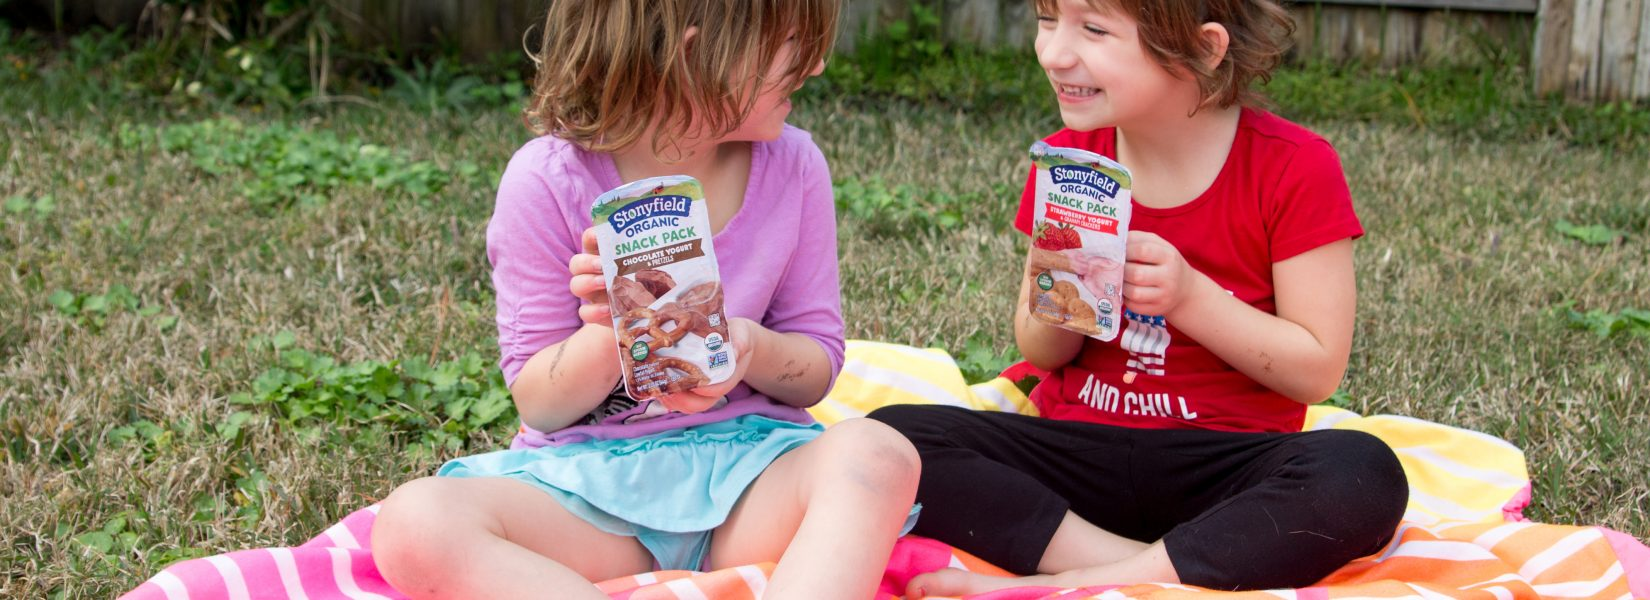 A Snack-Nic with Stonyfield